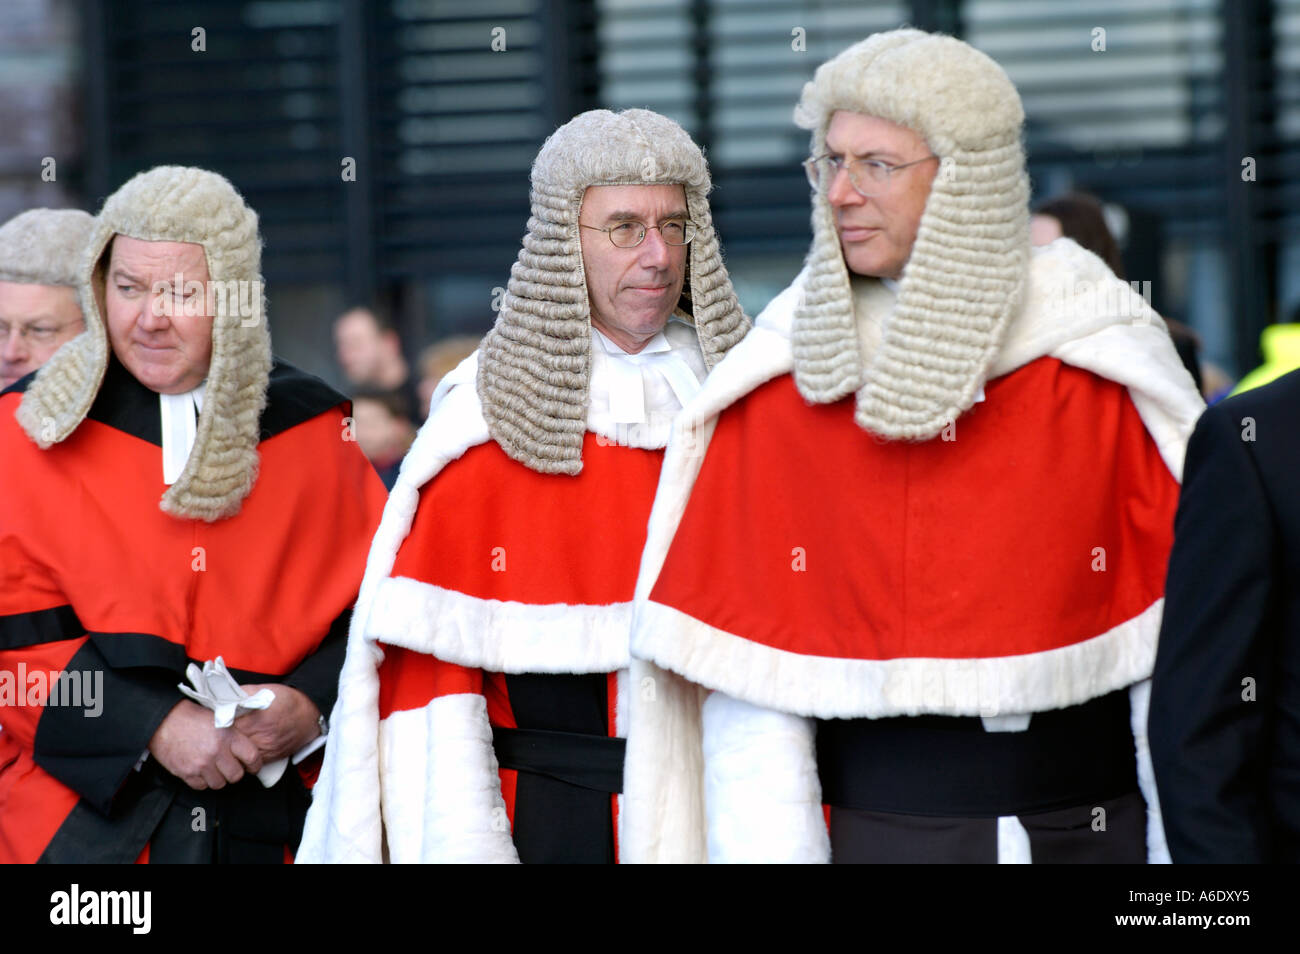 Members of the Judiciary arrive for the opening of the Senedd National Assembly for Wales, Cardiff Bay, South Wales, UK - Stock Image